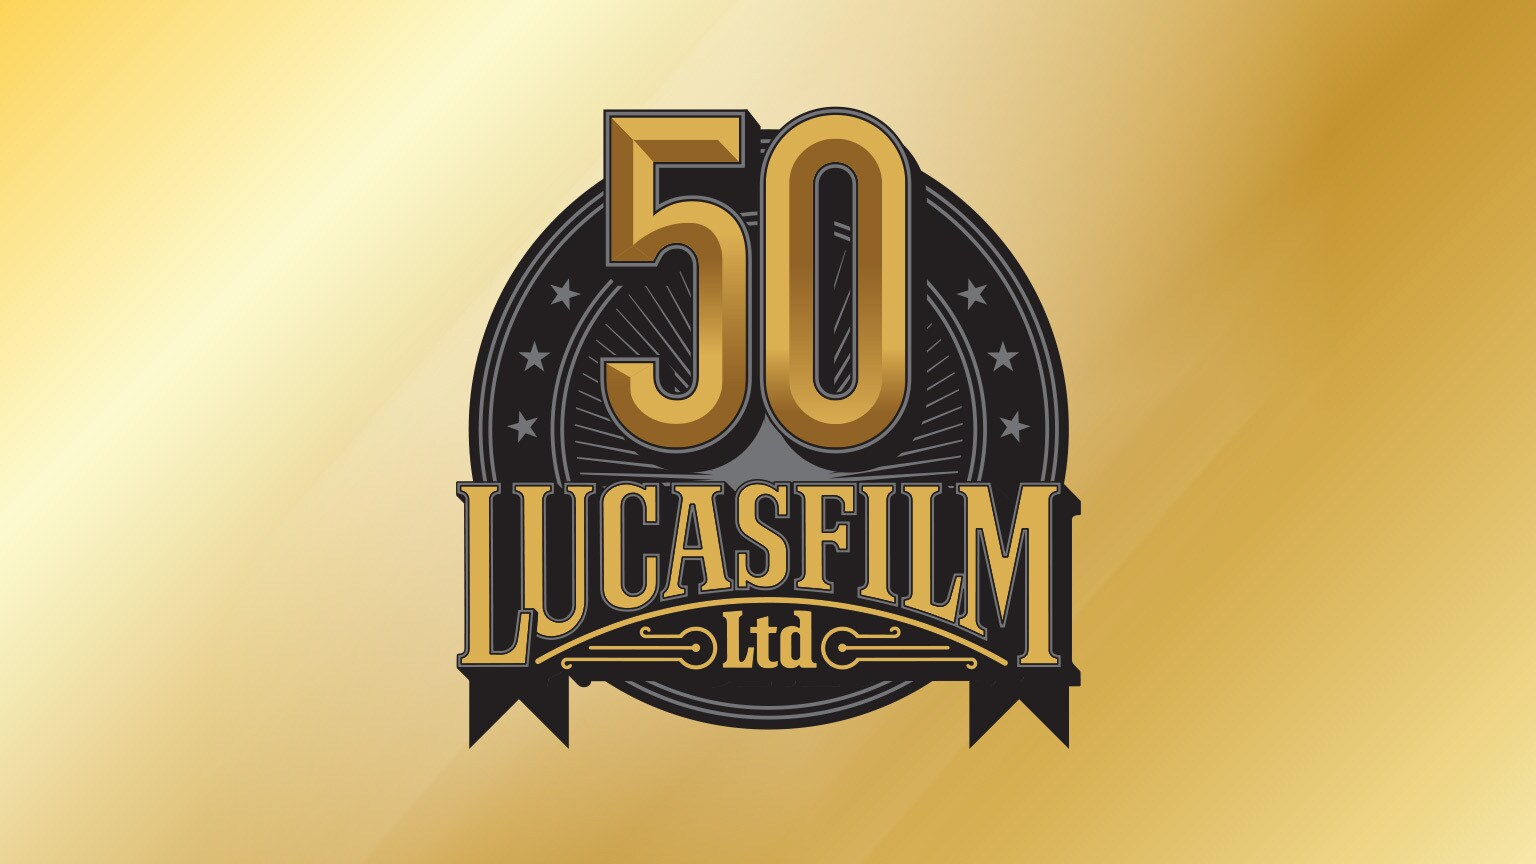 Lucasfilm to Celebrate 50th Anniversary in 2021